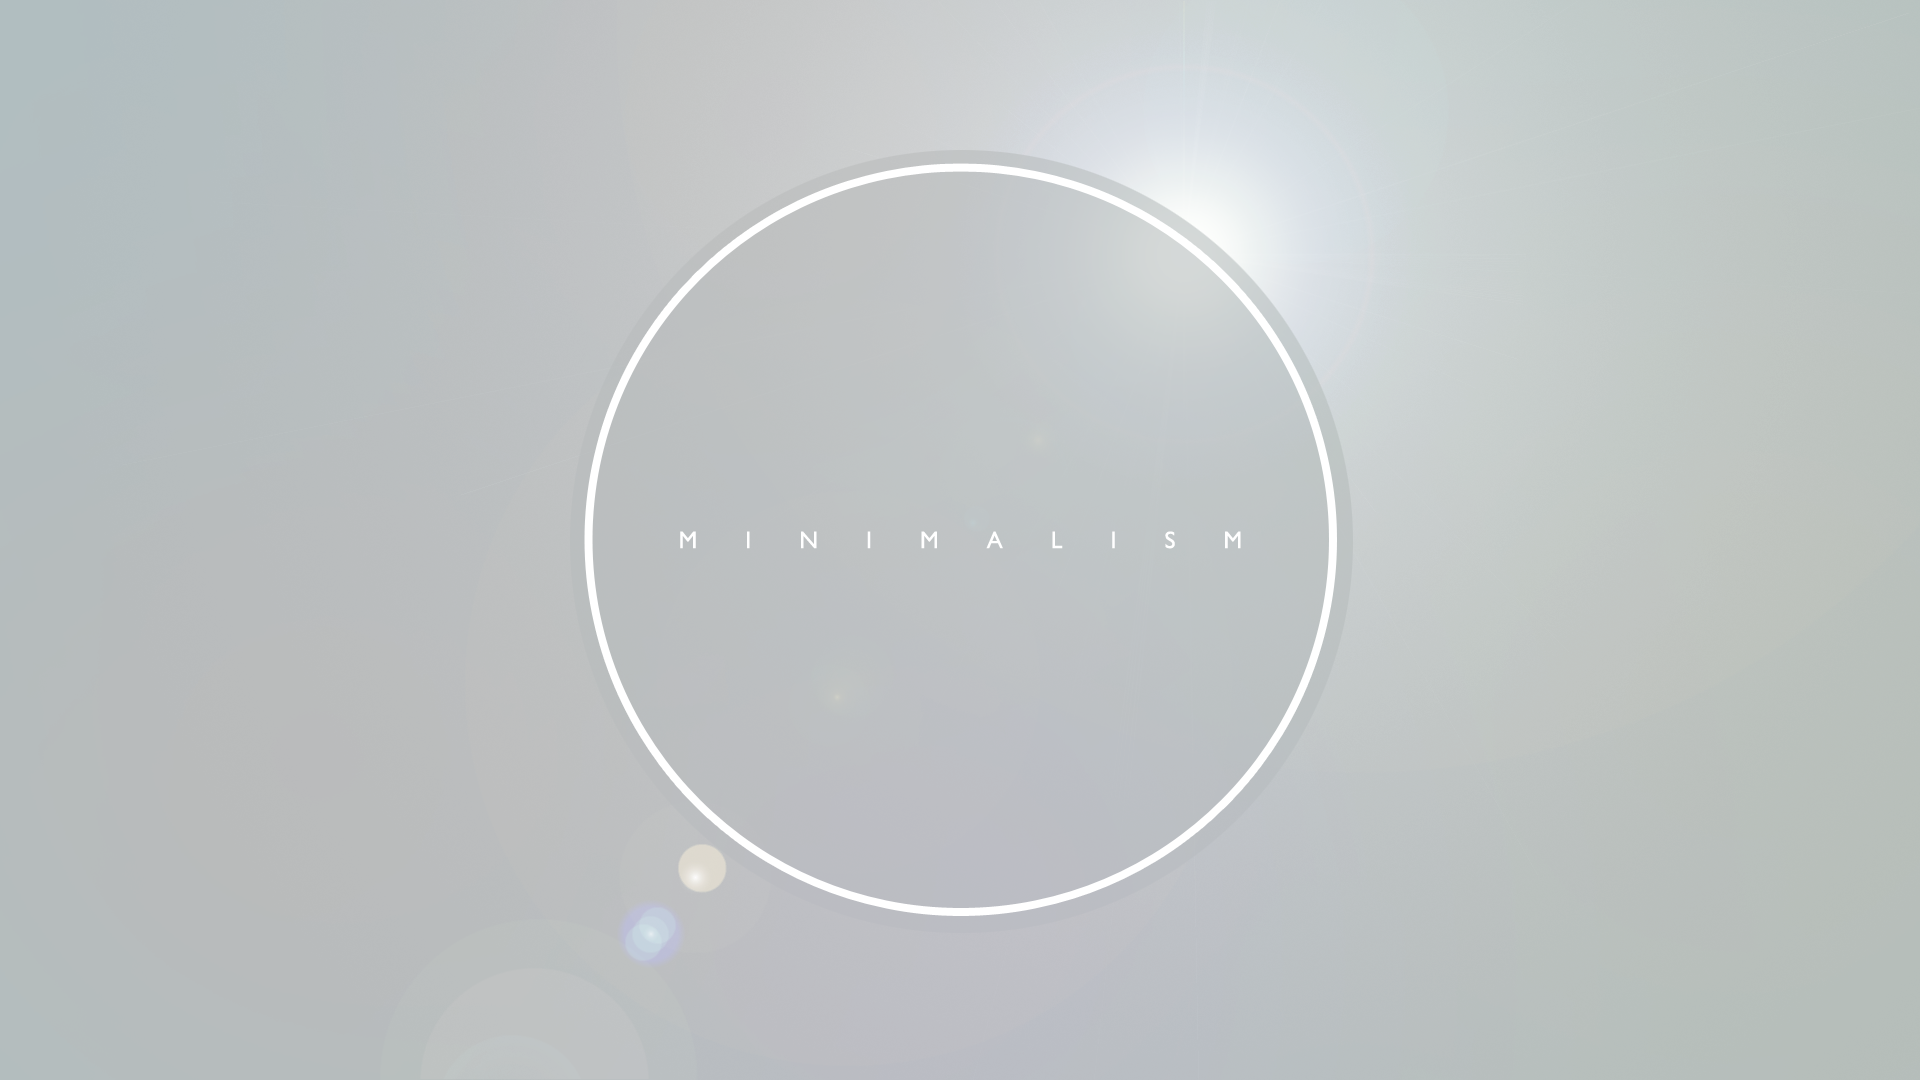 49 1080p Minimalist Wallpaper On Wallpapersafari Customize your desktop, mobile phone and tablet with our wide variety of cool and interesting 1920x1080 wallpapers in just a few clicks! 49 1080p minimalist wallpaper on